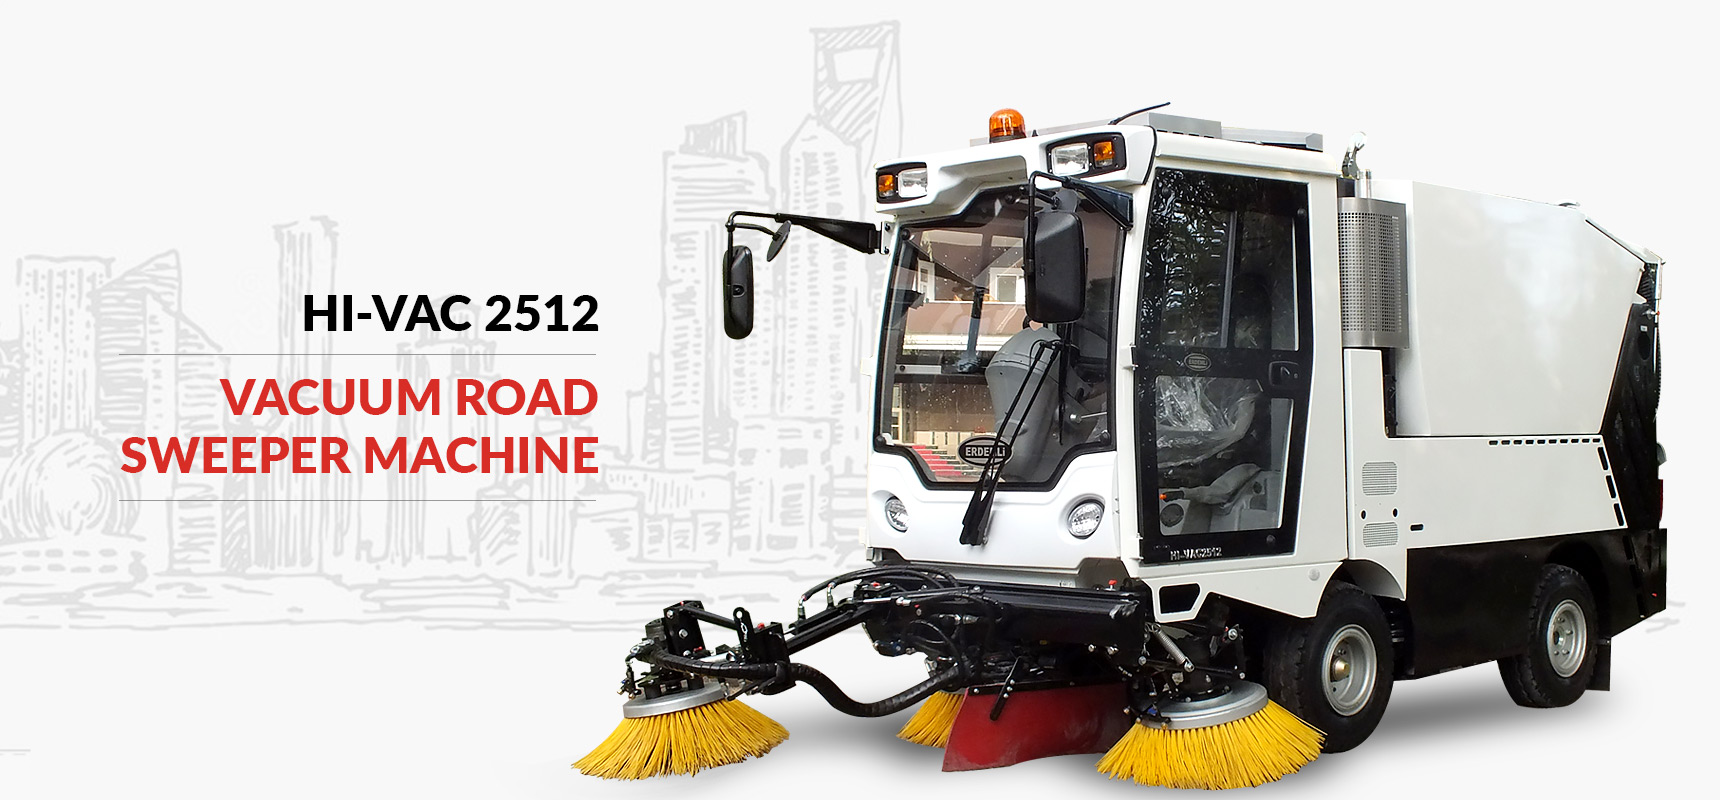 Erdemli Hydraulic Vacuum Road Sweeper Machine